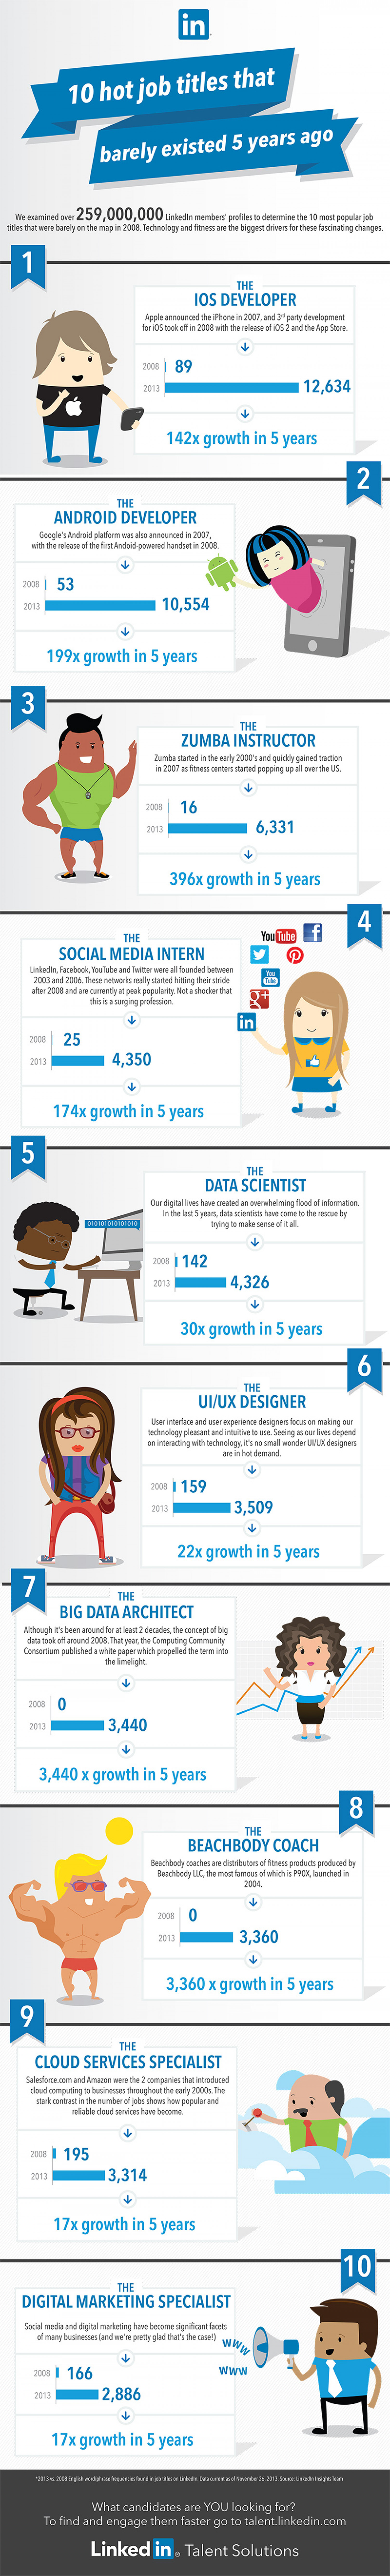 Top 10 Job Titles That Didn't Exist 5 Years Ago Infographic